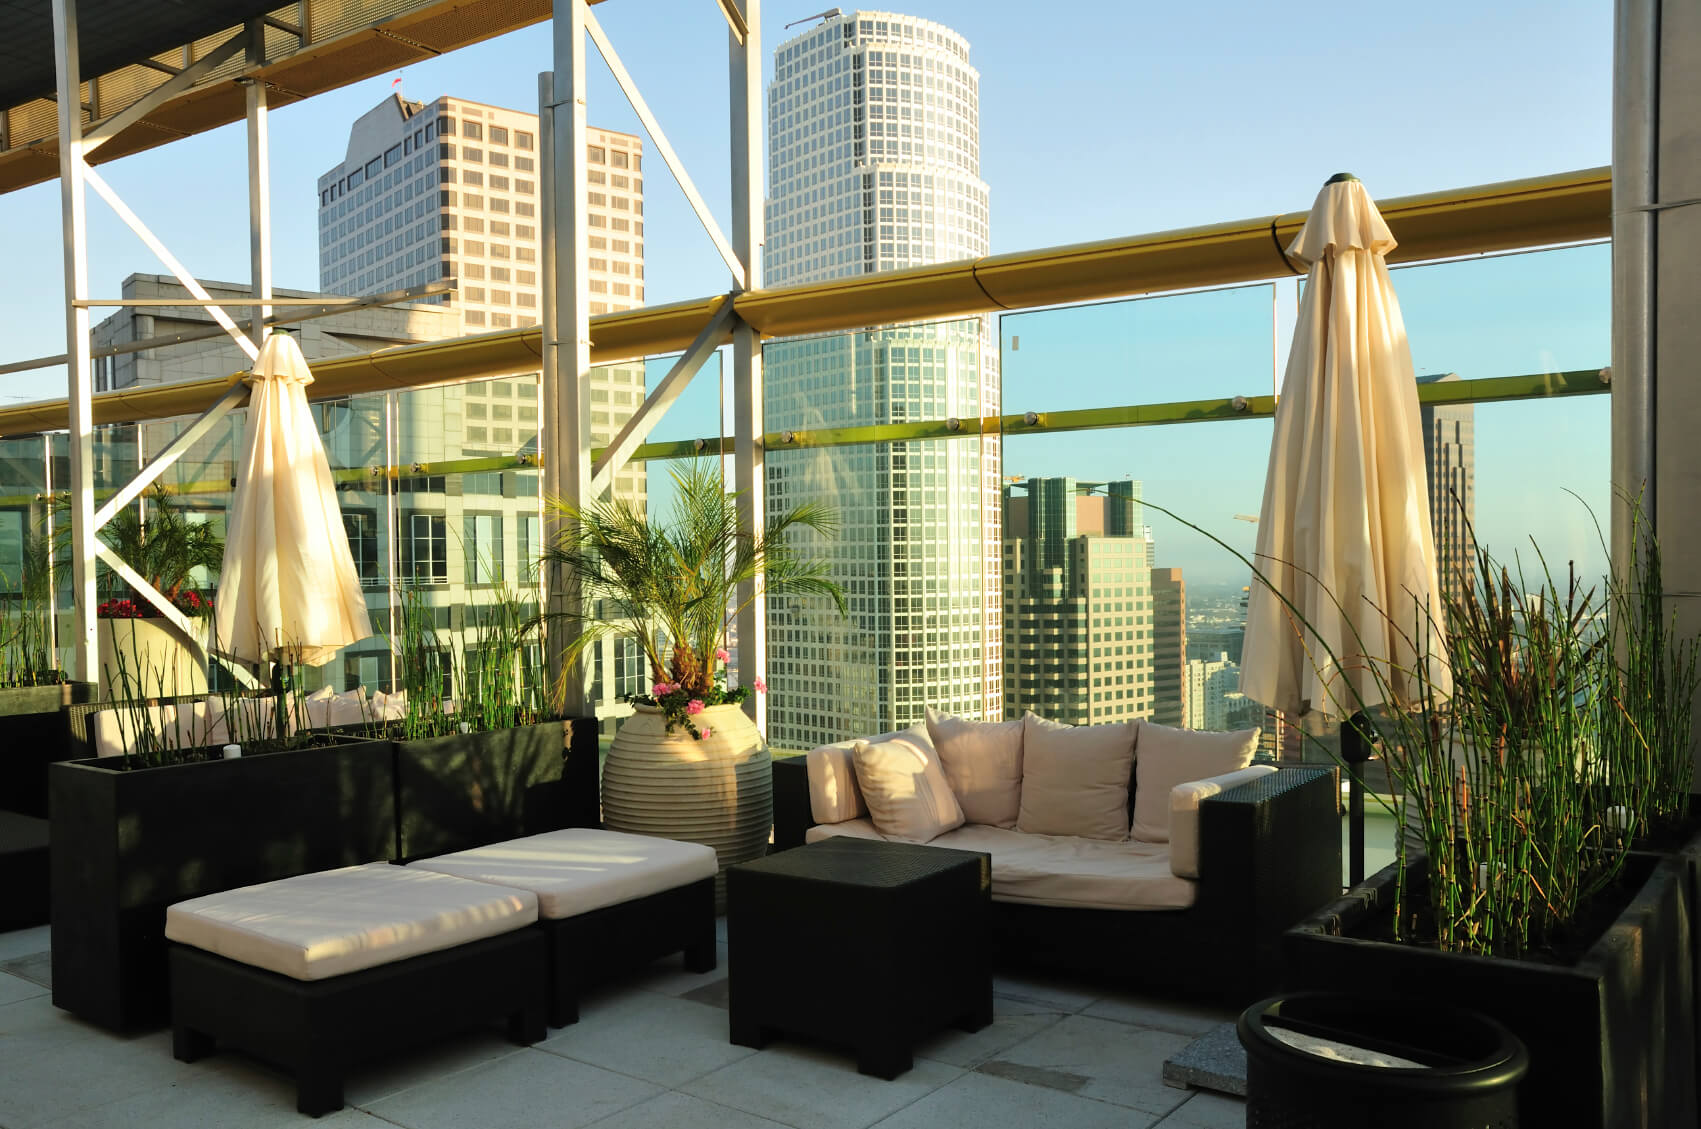 This incredible rooftop patio is enclosed by tall glass balustrades and completely covered by a tall roof. Intimate seating areas are each equipped with a sofa, several ottomans, a coffee table, umbrella, and divided by tall planters with grasses.